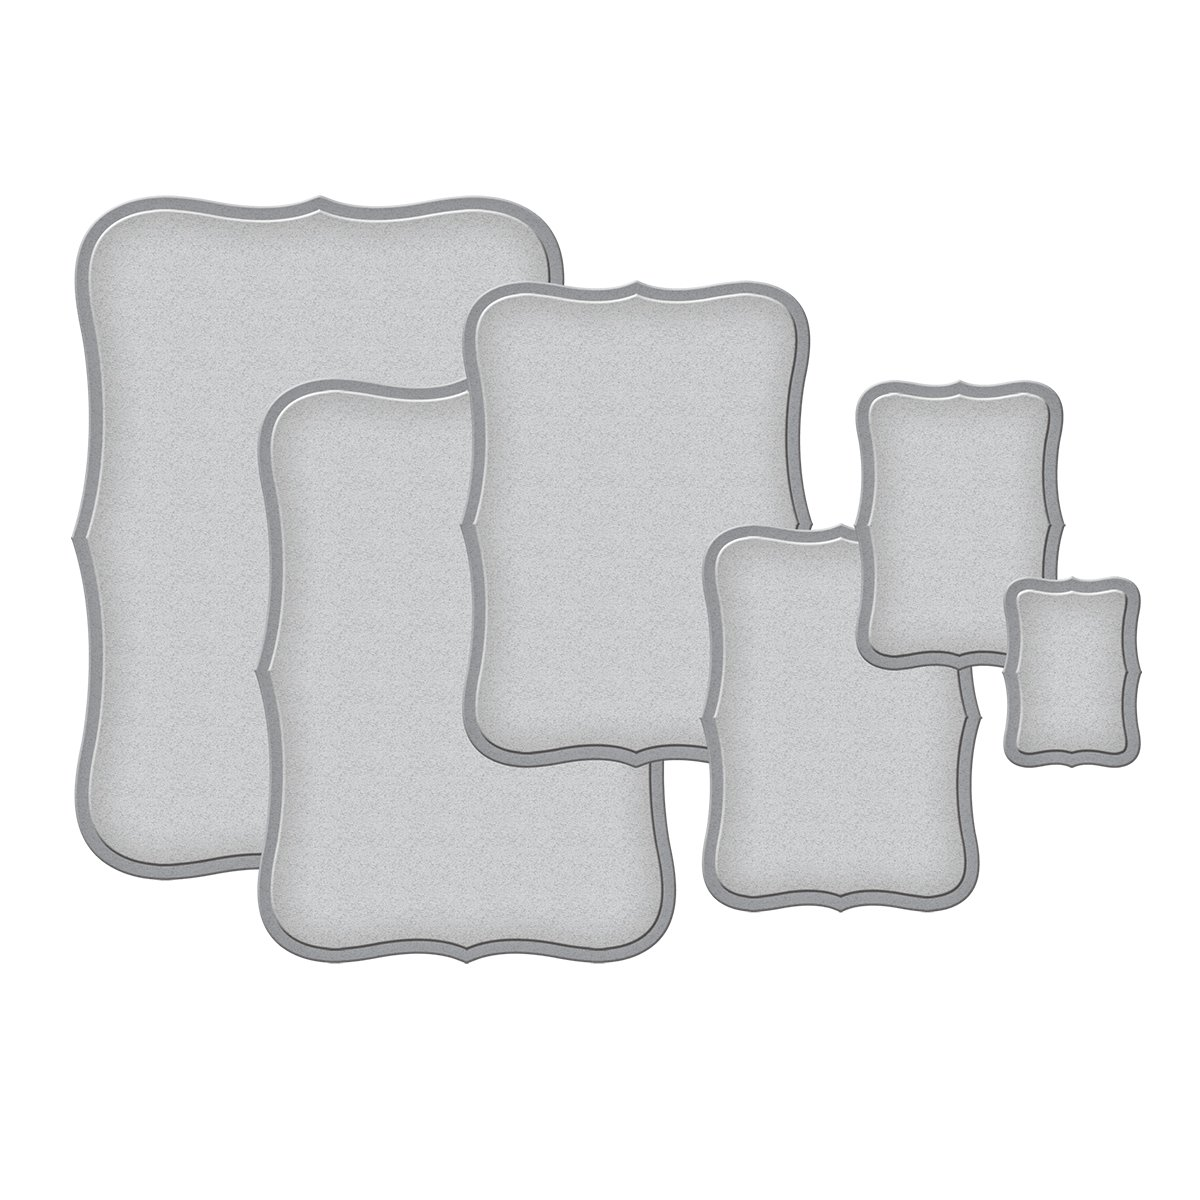 Spellbinders S5-019 Nestabilities Labels Eight Etched/Wafer Thin Dies